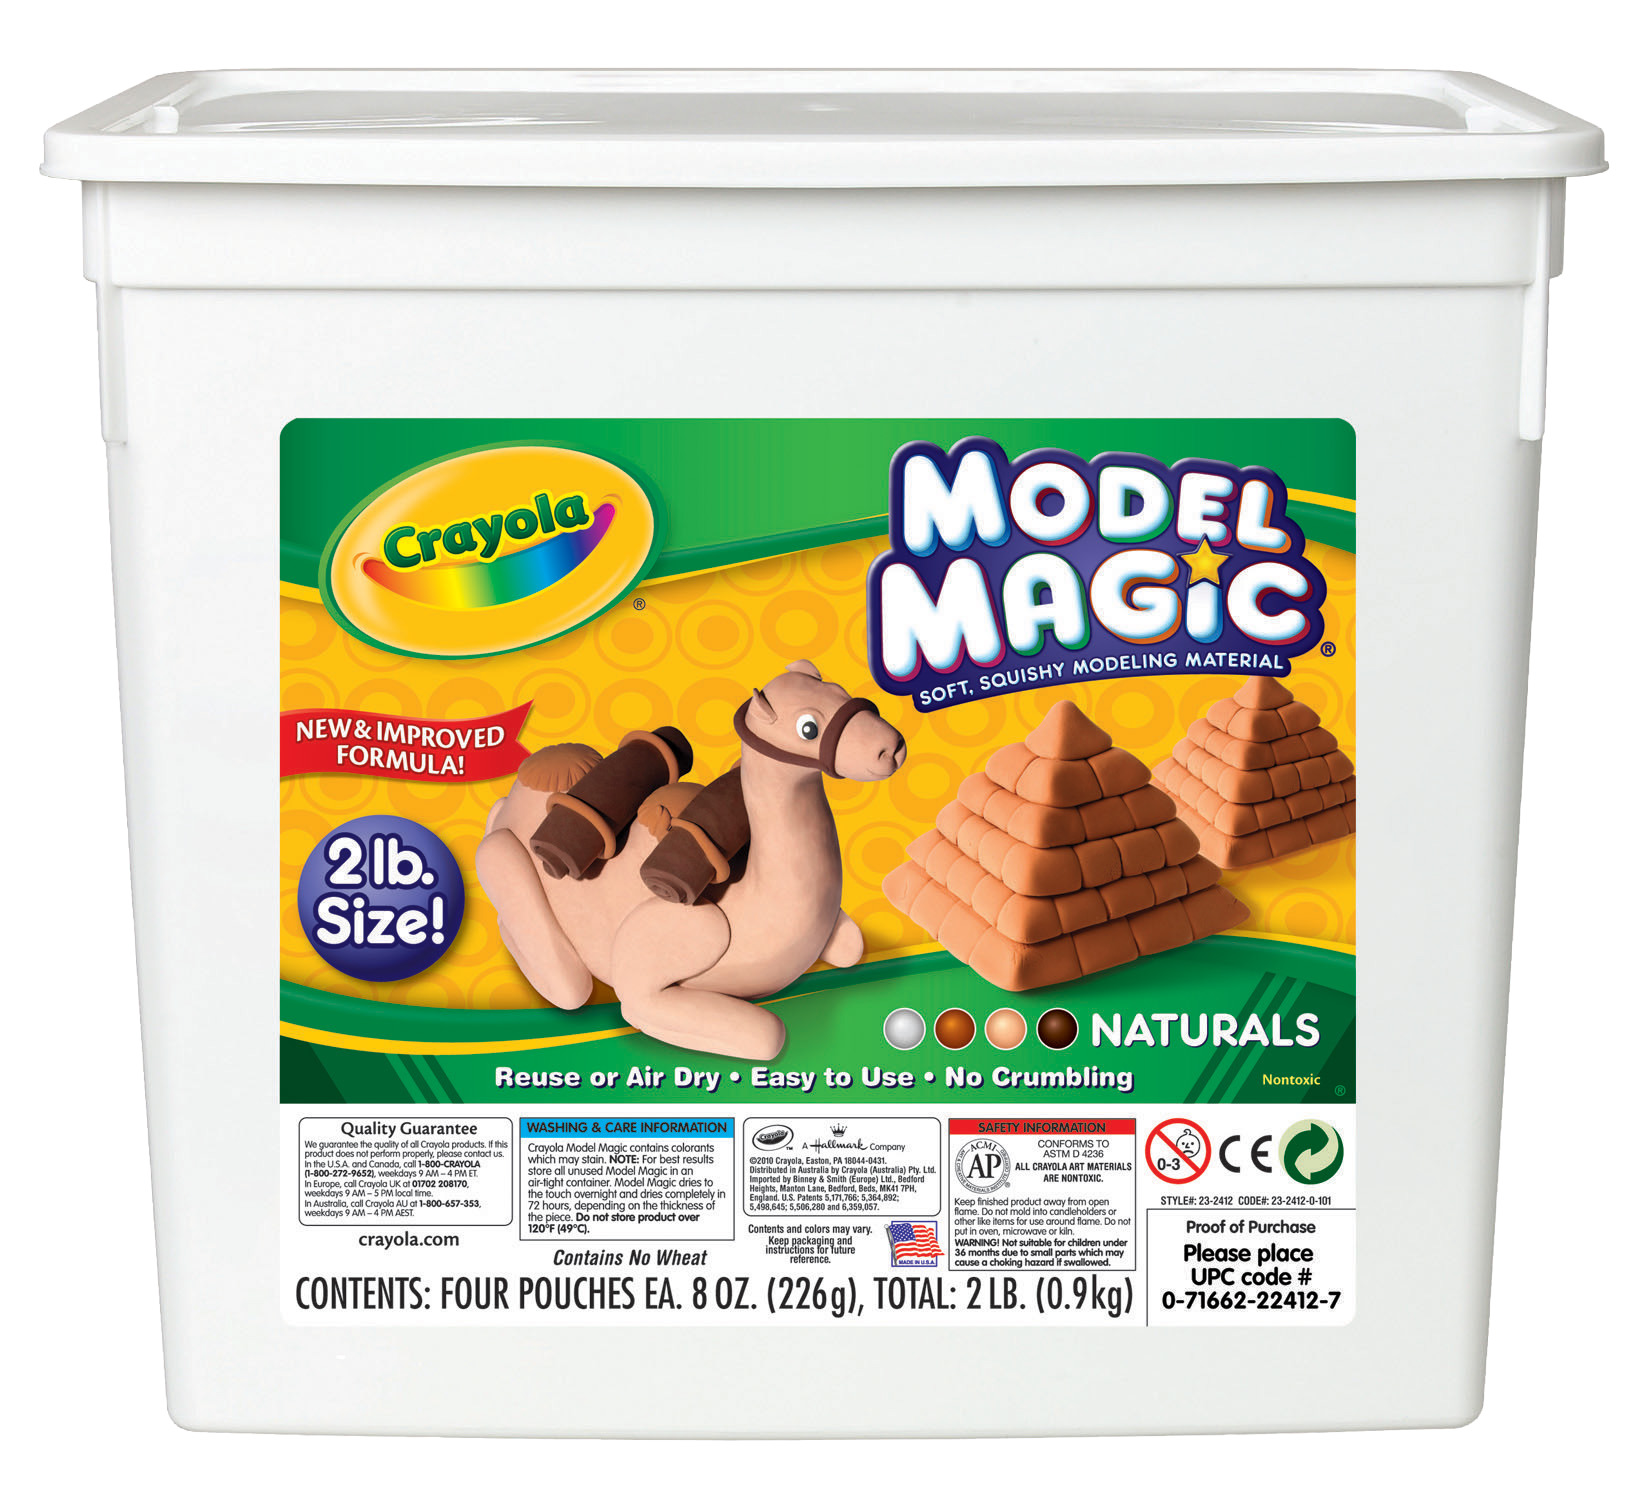 Crayola Model Magic Non-Toxic Modeling Dough Set, 8 oz, Assorted Natural Color, Set of 4